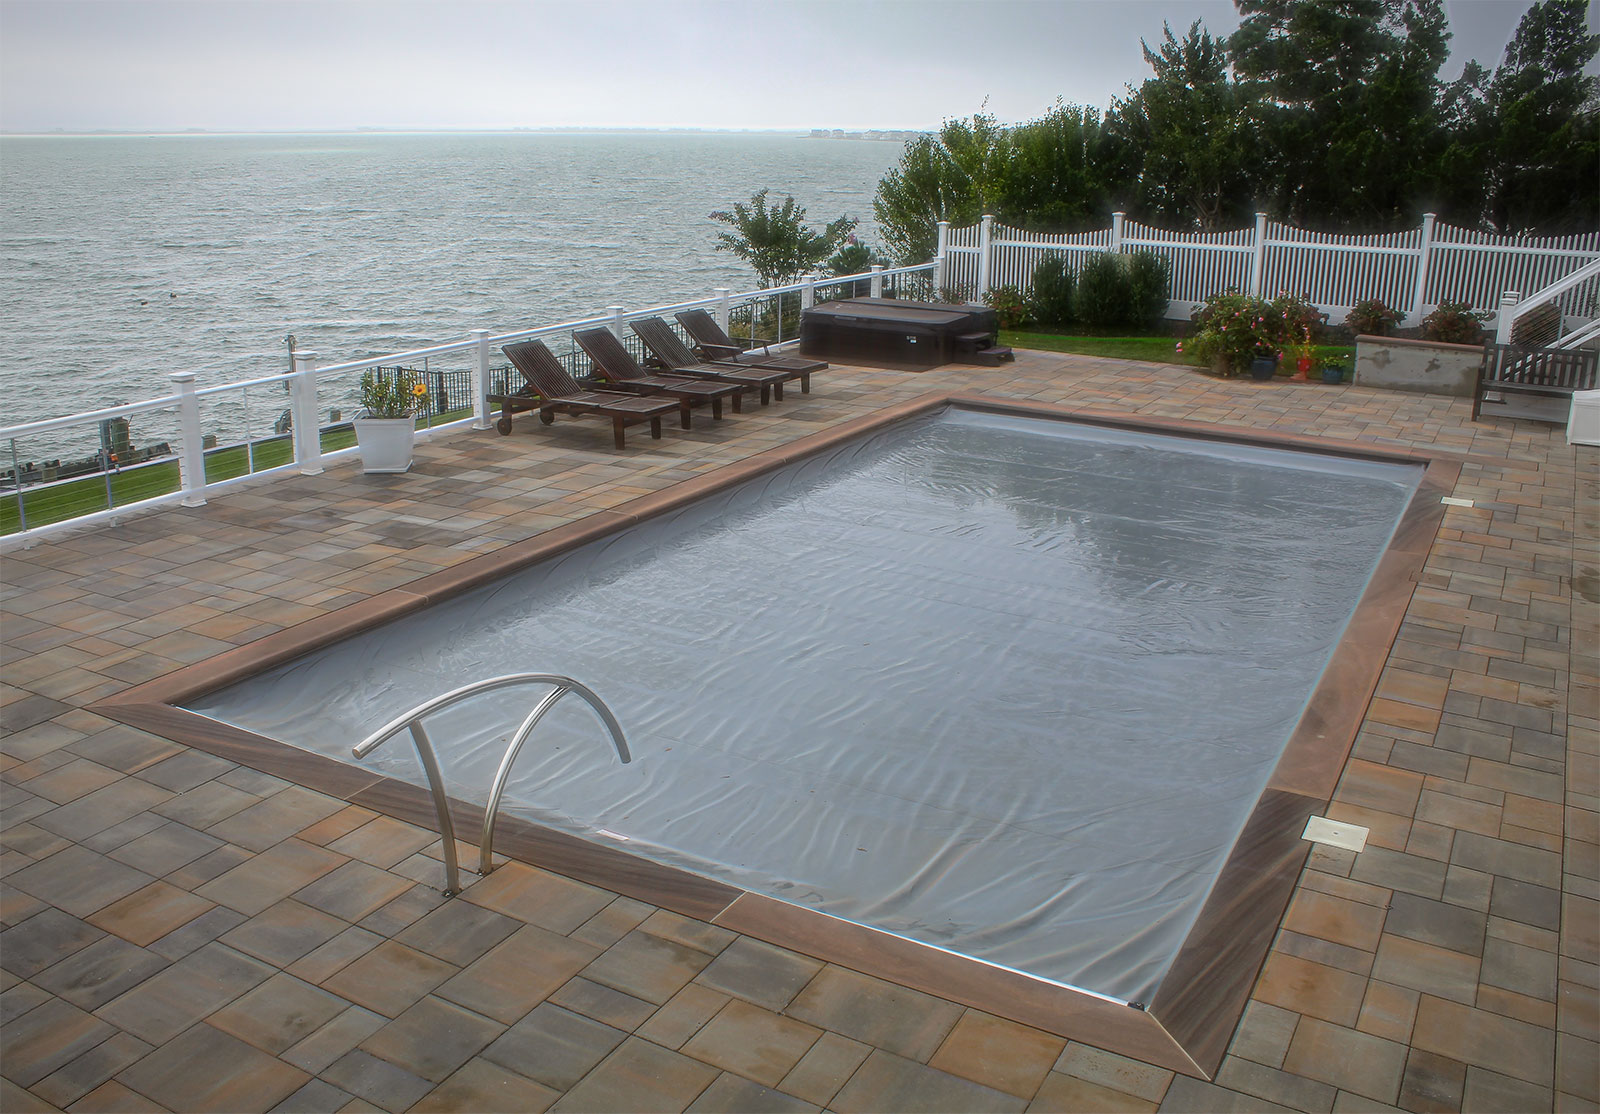 Residential Vinyl Pool Construction with Auto-Cover Feature